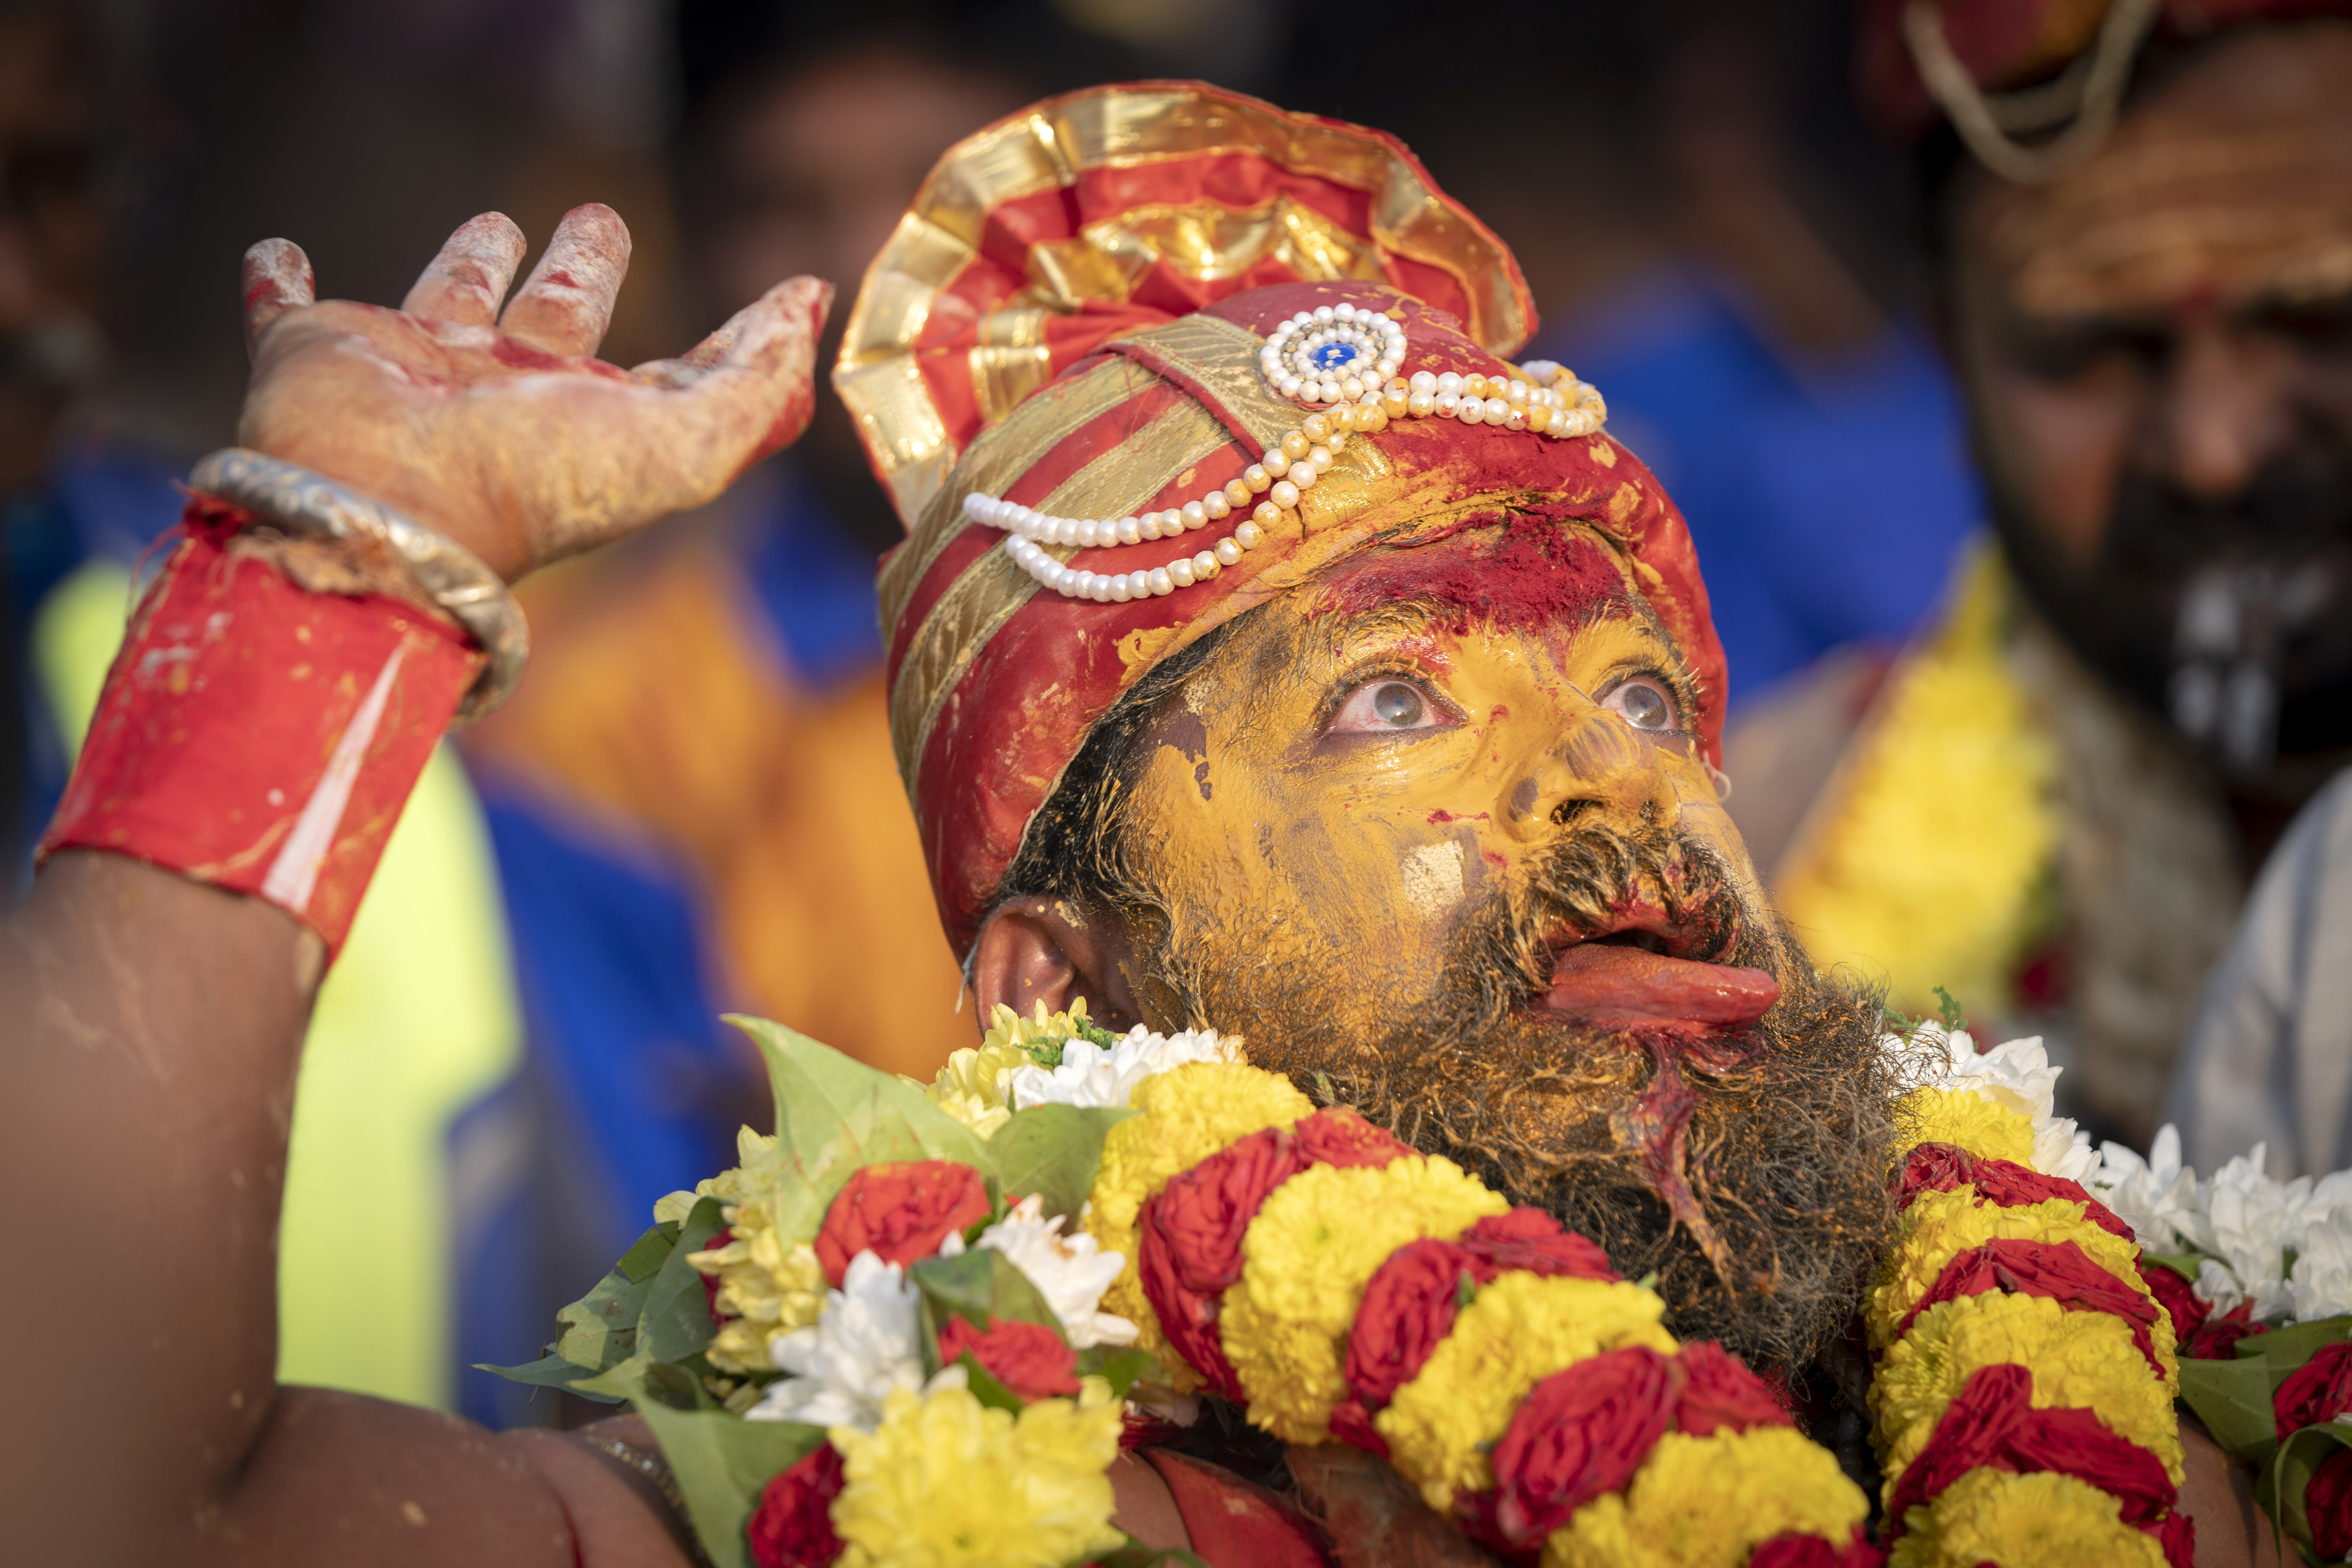 A Tamil Hindu priest has antiseptic powder on his face in a procession during the Thaipusam festival at Batu Caves, outskirts of Kuala Lumpur, Saturday, Feb. 8, 2020. Thaipusam, which is celebrated in honor of Hindu god Lord Murugan, is an annual procession by Hindu devotees seeking blessings, fulfilling vows and offering thanks. (AP Photo/Vincent Thian)